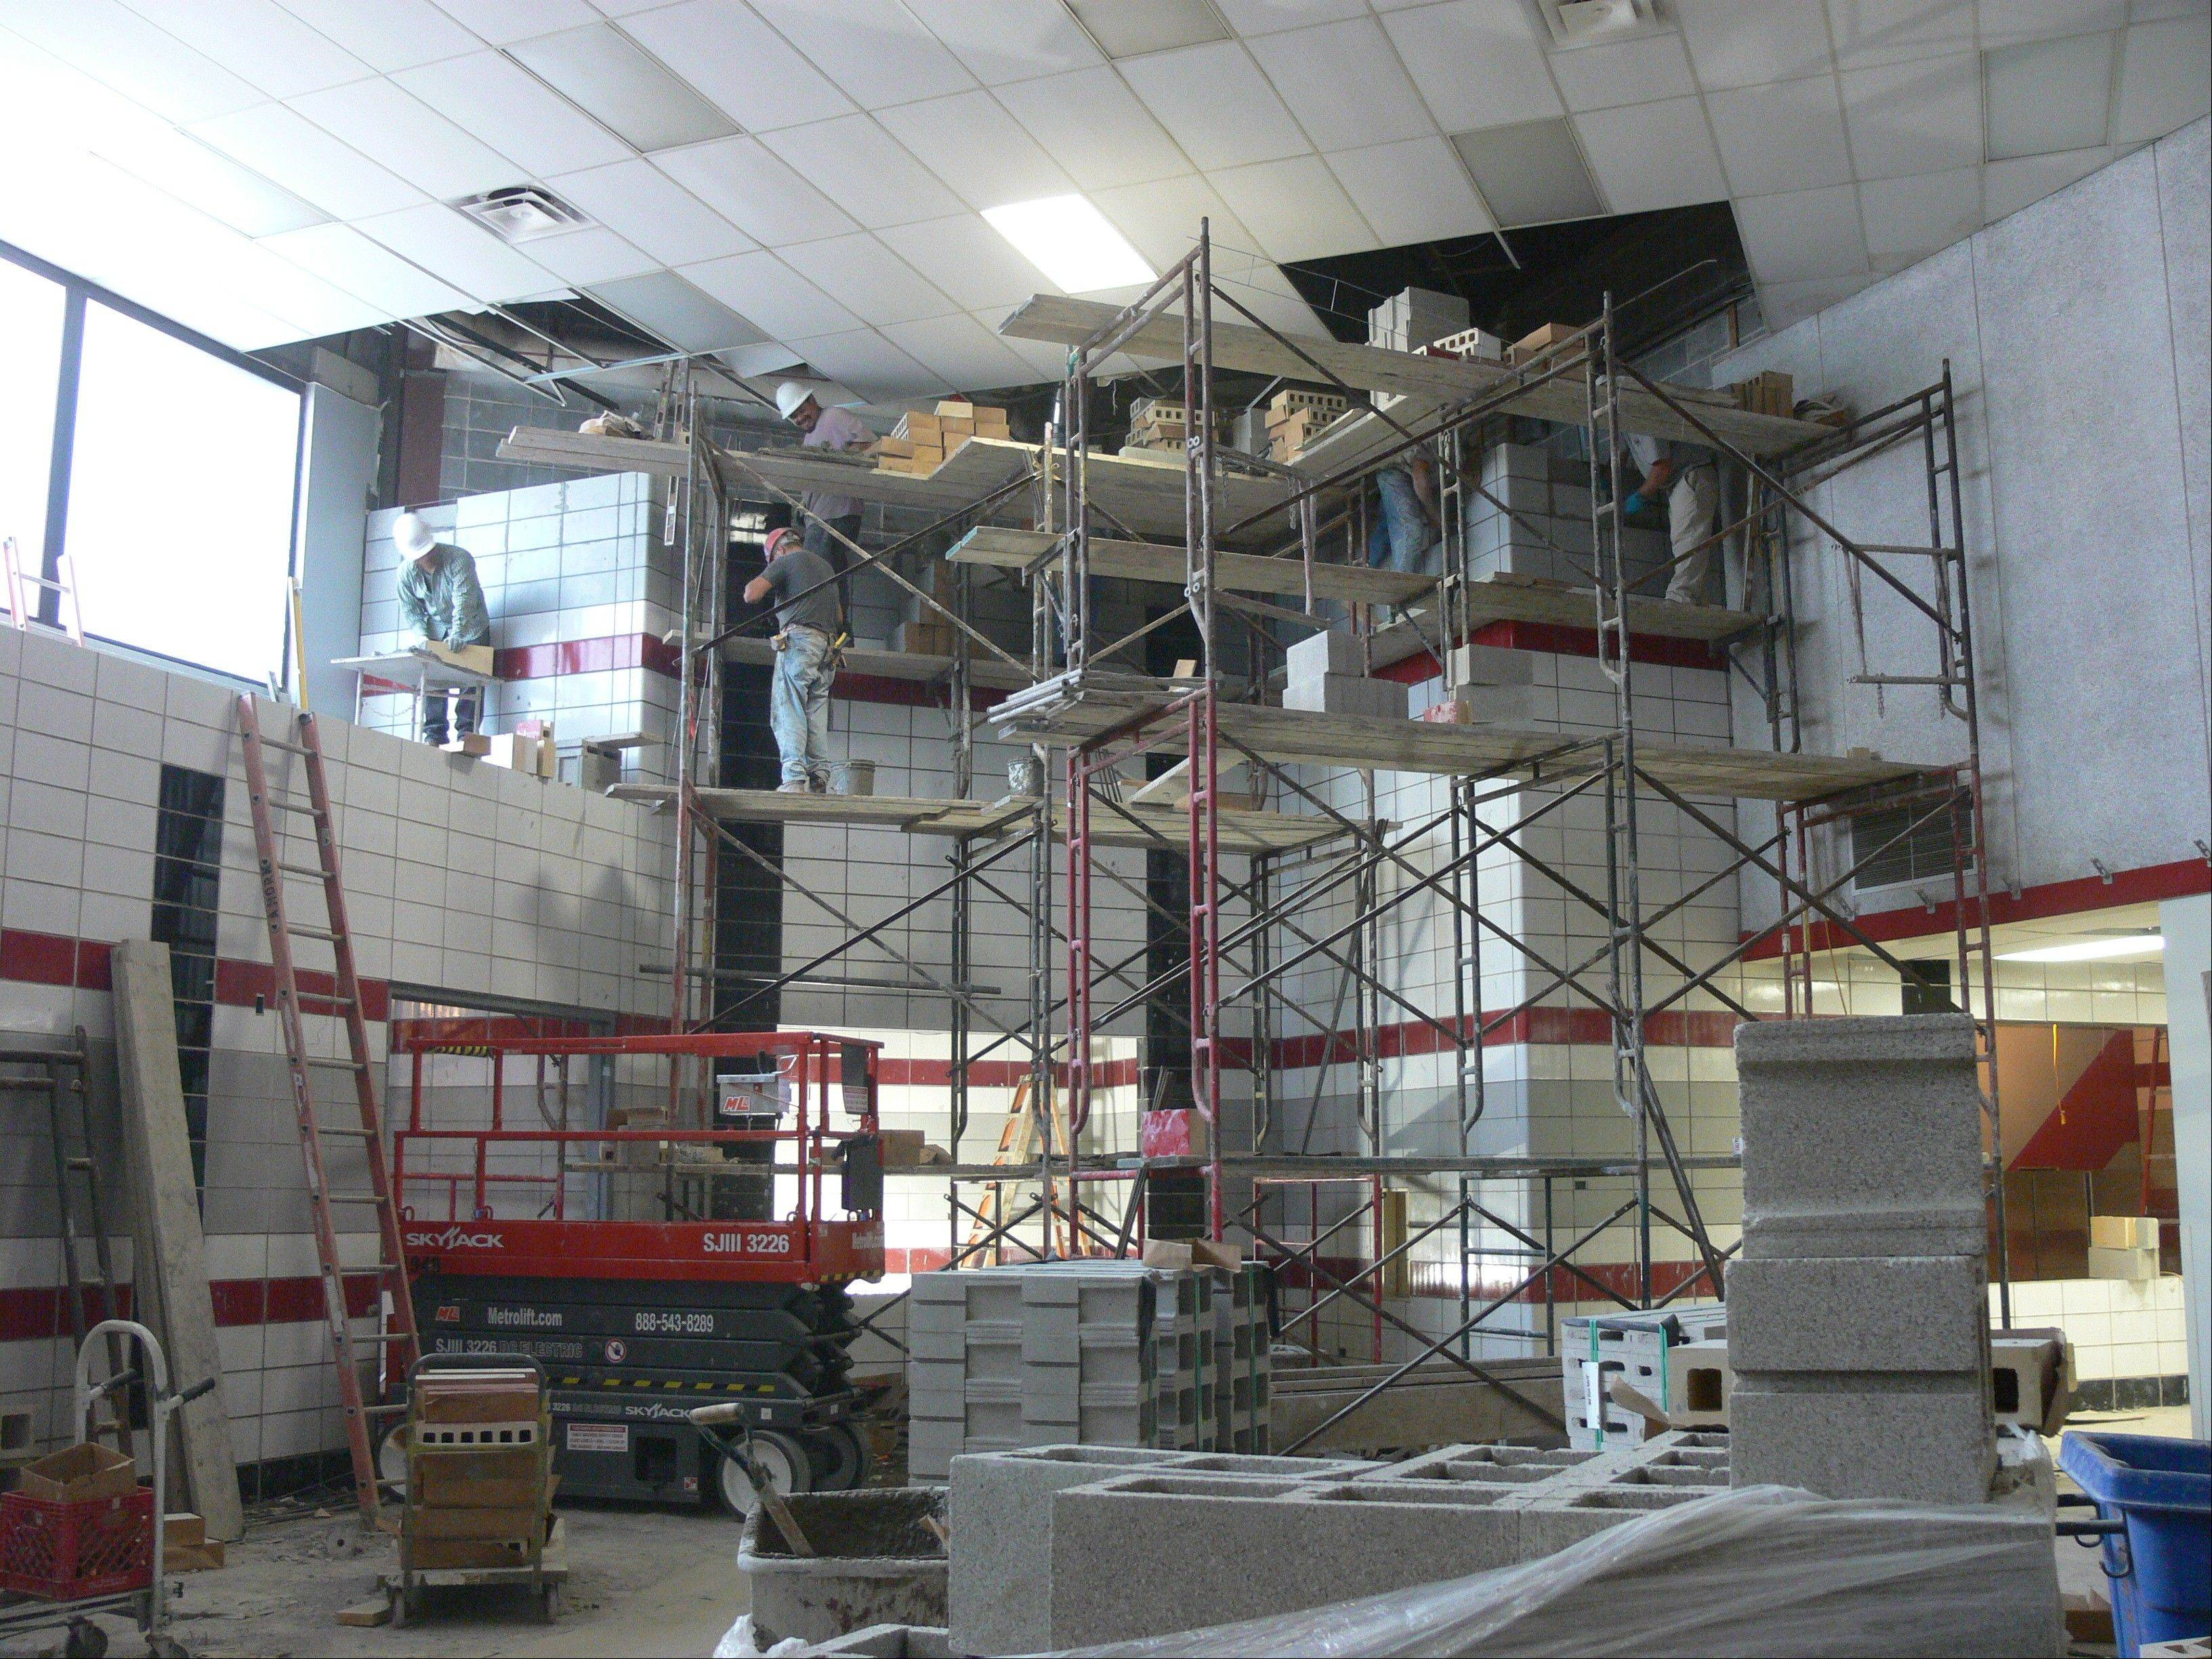 Work is being done near Palatine High School's new lunch and kitchen area, which has not been updated since the school opened in the late 1970s. Improving the layout and functionality for students and staff is a top priority.